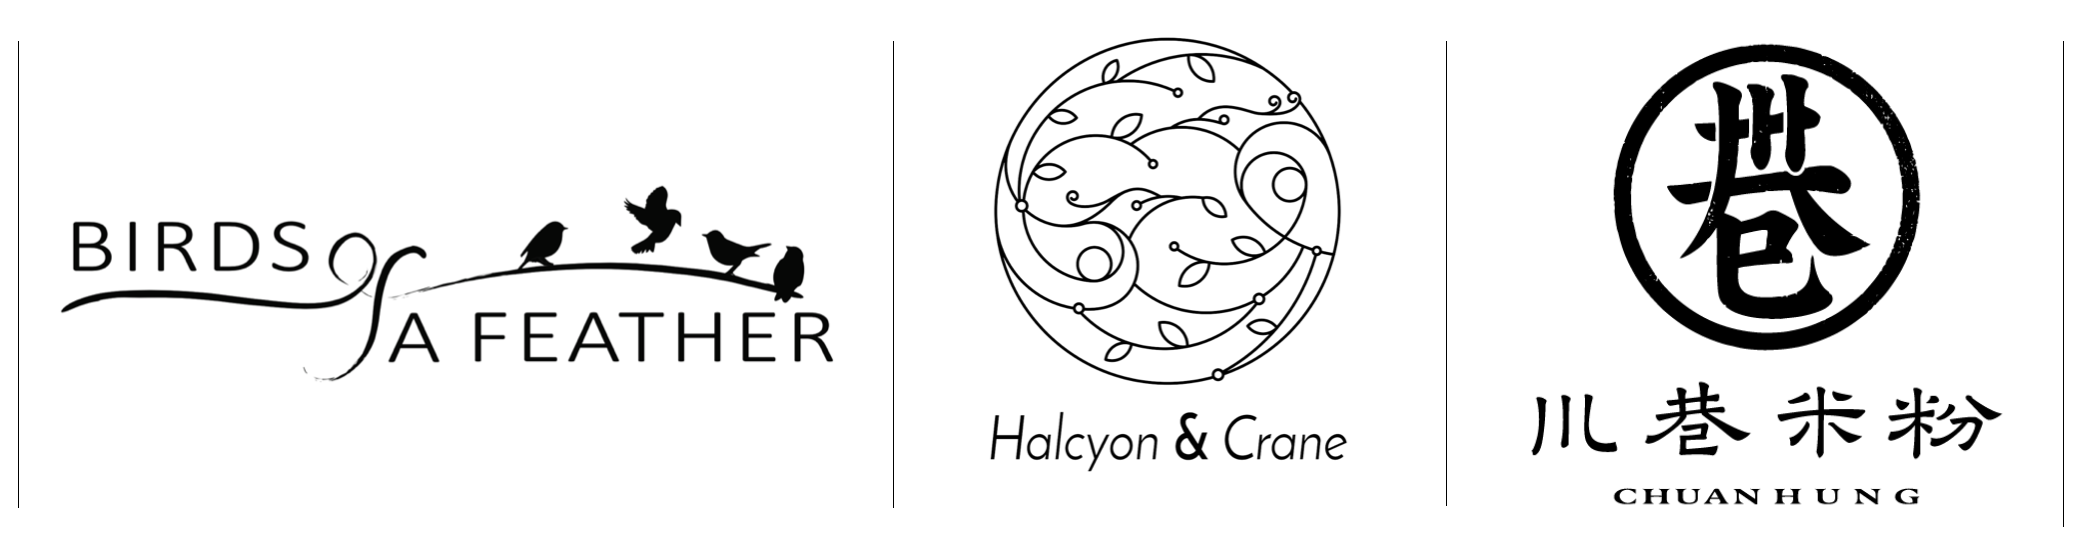 Birds Of A Feather · Halcyon & Crane All-Day Brunch · Chuan Hung Noodle